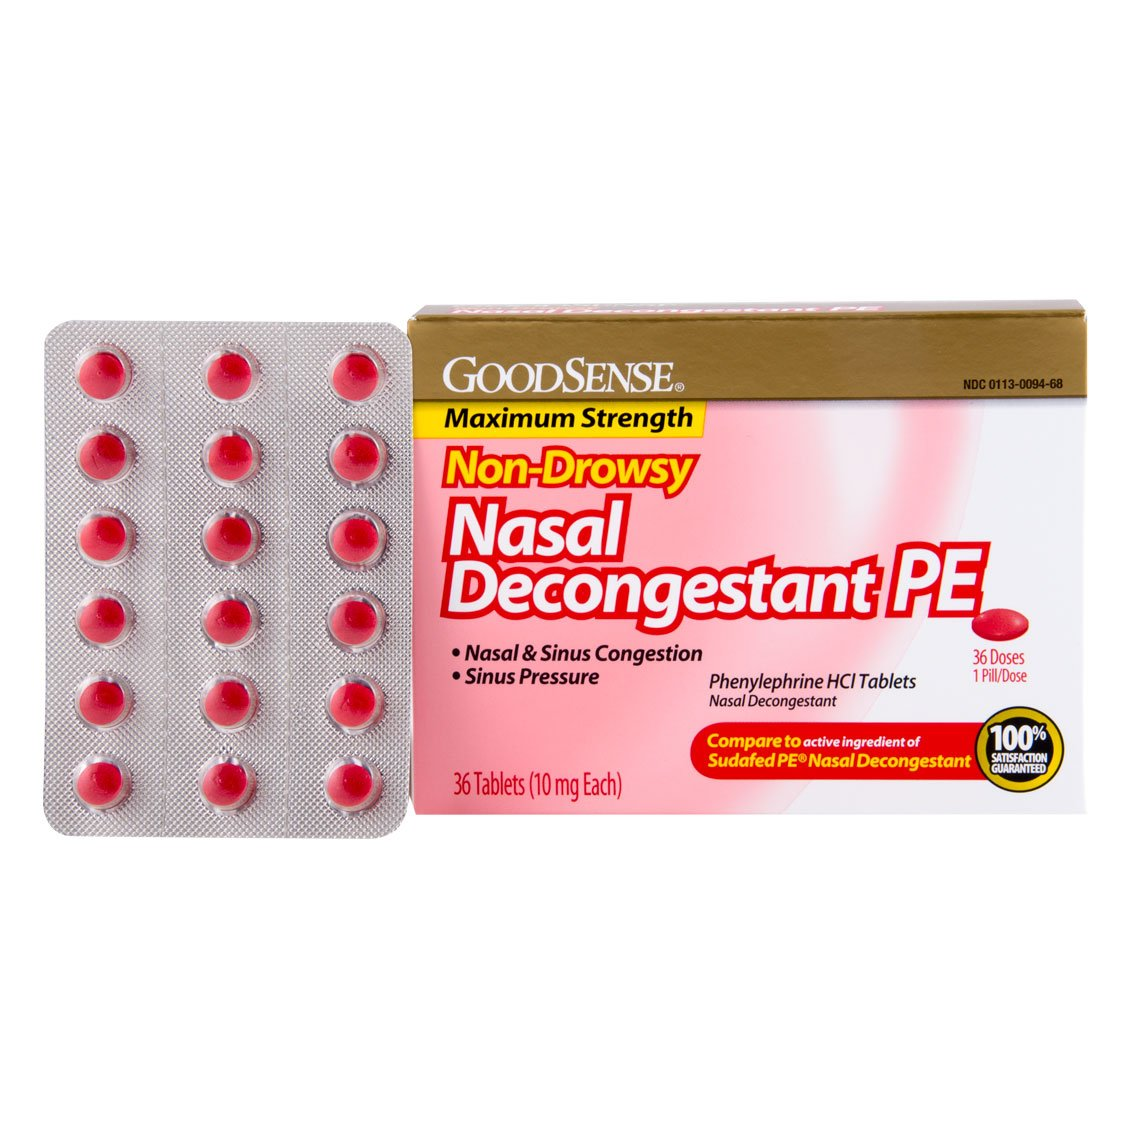 Polydex Nasal Spray for Children - reviews, instructions for use and composition 35